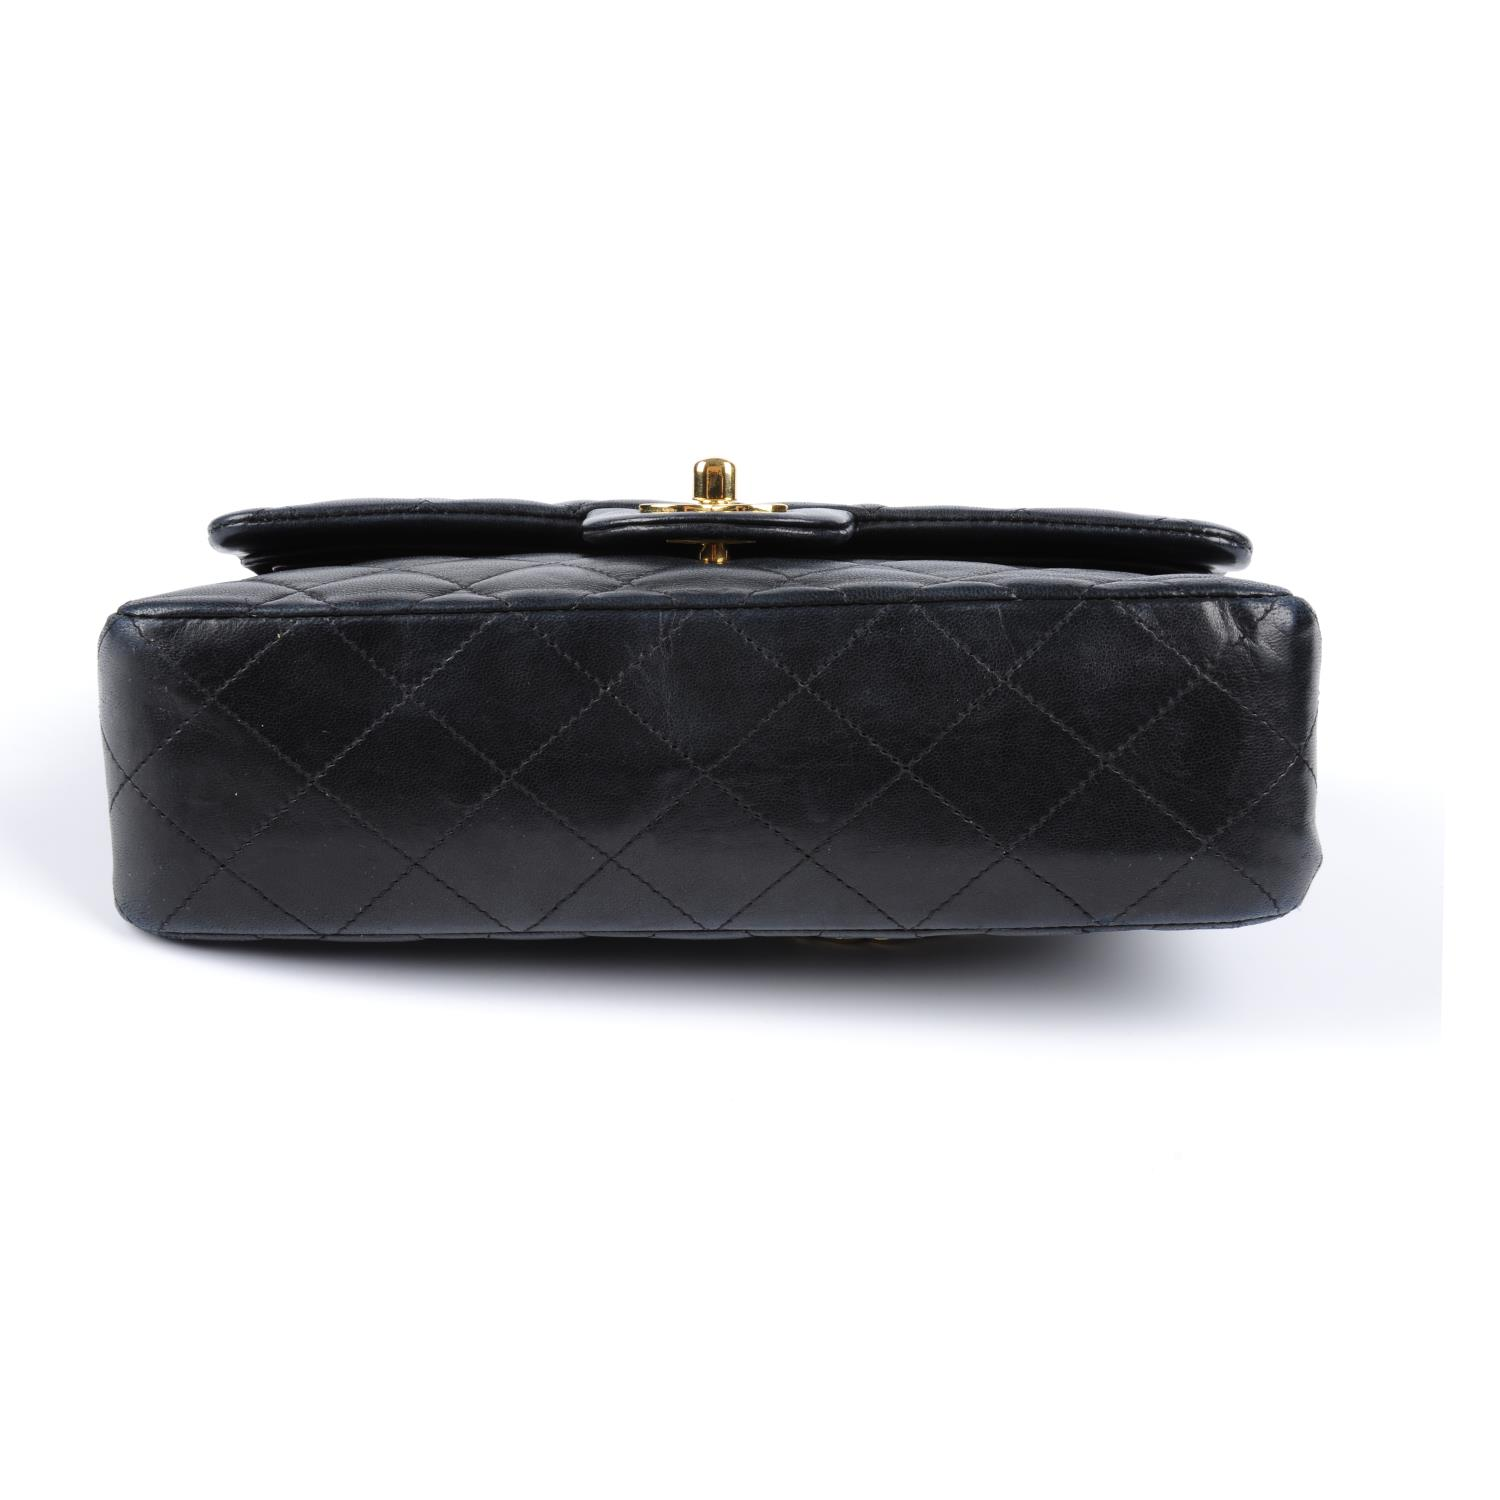 Lot 57 - CHANEL - a Small Double Flap handbag.